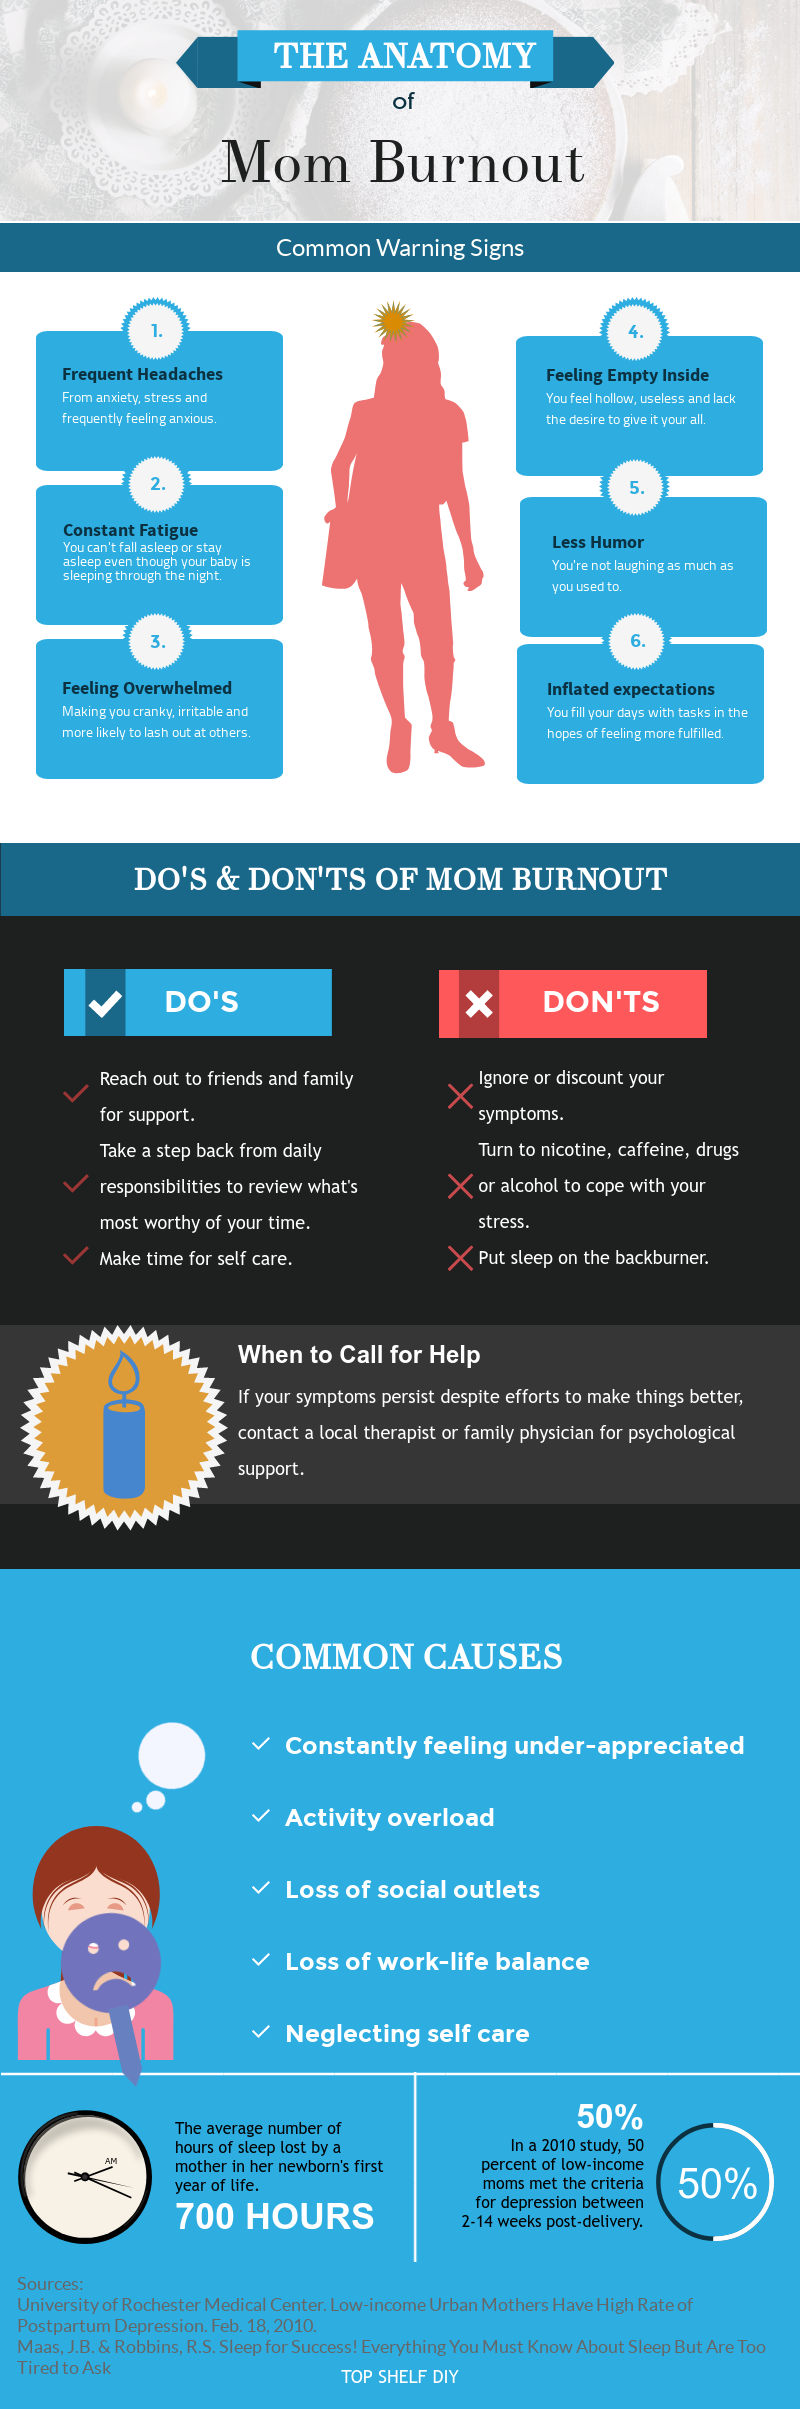 Taking care of your self is so hard to do when you are busy taking care of others. Here's how to recognize and stop Mom Burnout in its tracks. #burnout #depression #motherhood